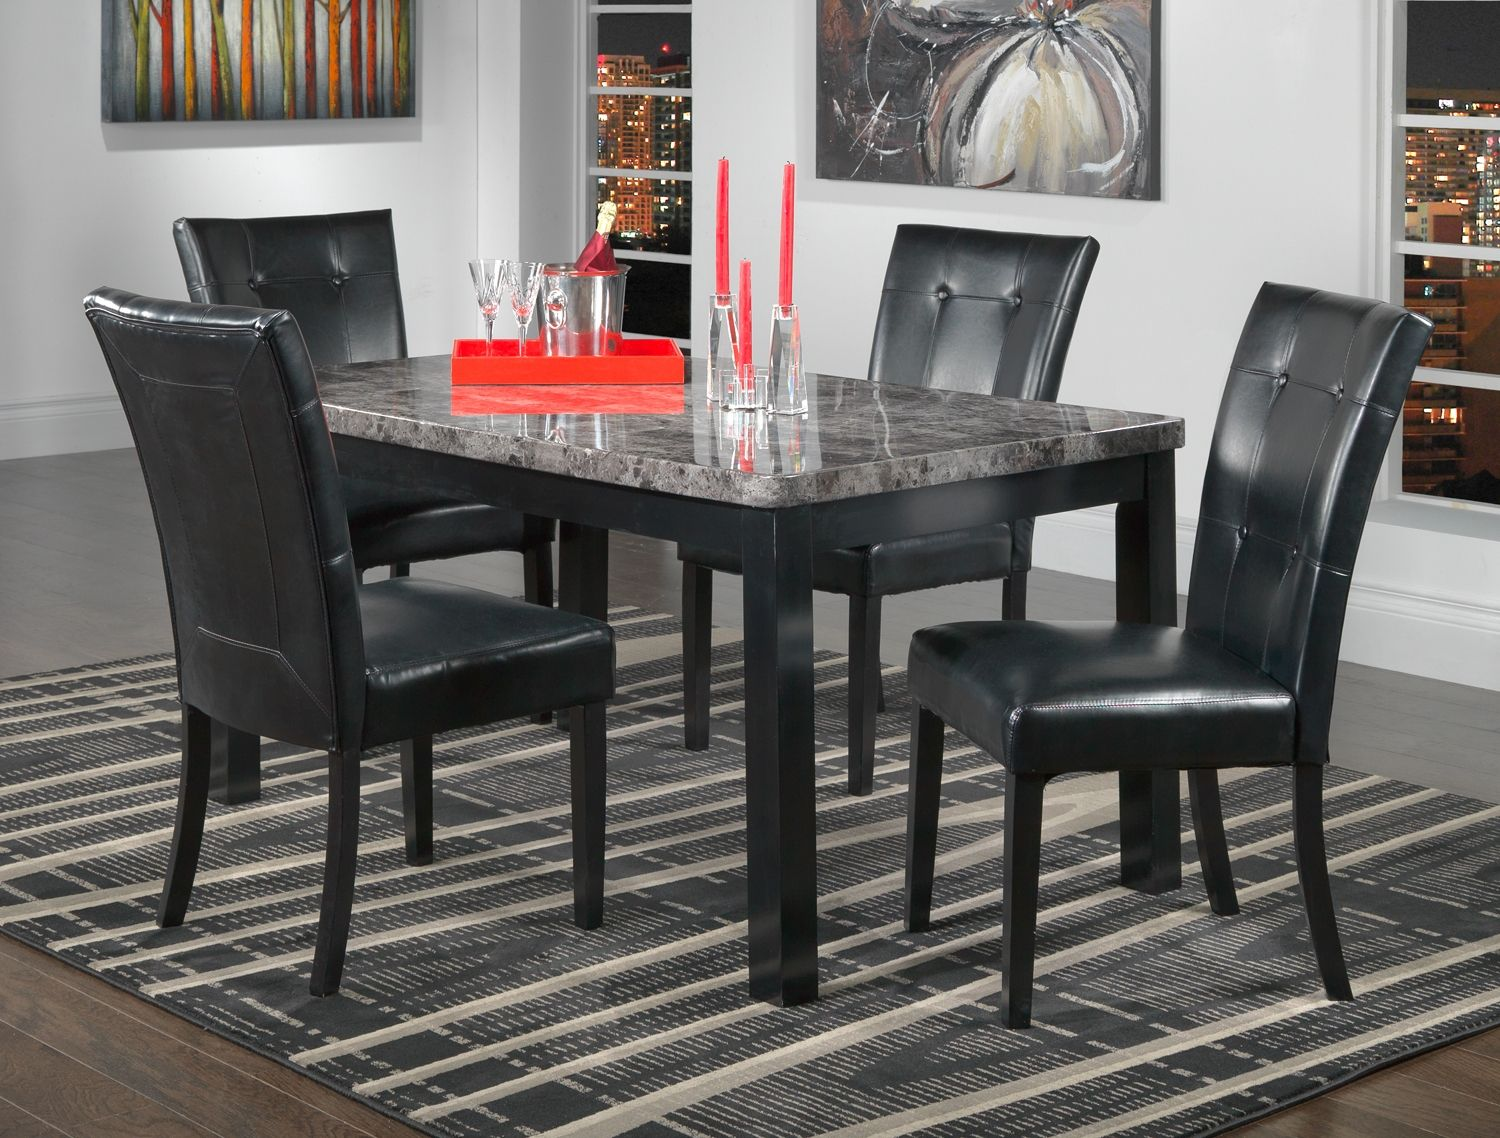 Admirable Martina Casual Dining 5 Pc Dinette Leons Dining Room Dailytribune Chair Design For Home Dailytribuneorg